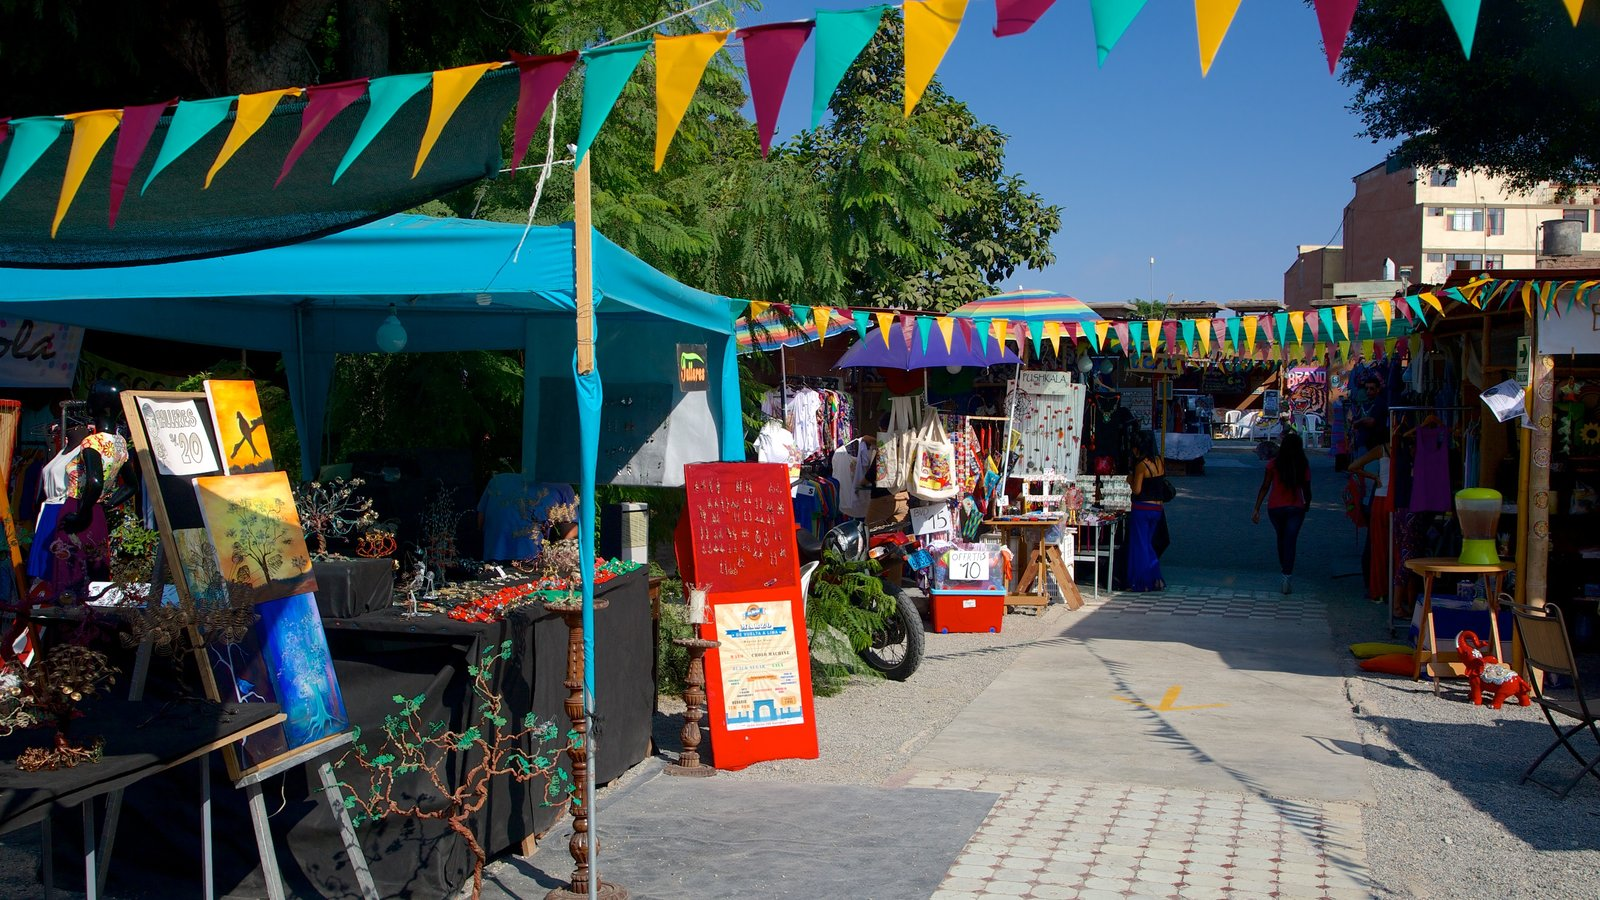 Barranco which includes markets and street scenes